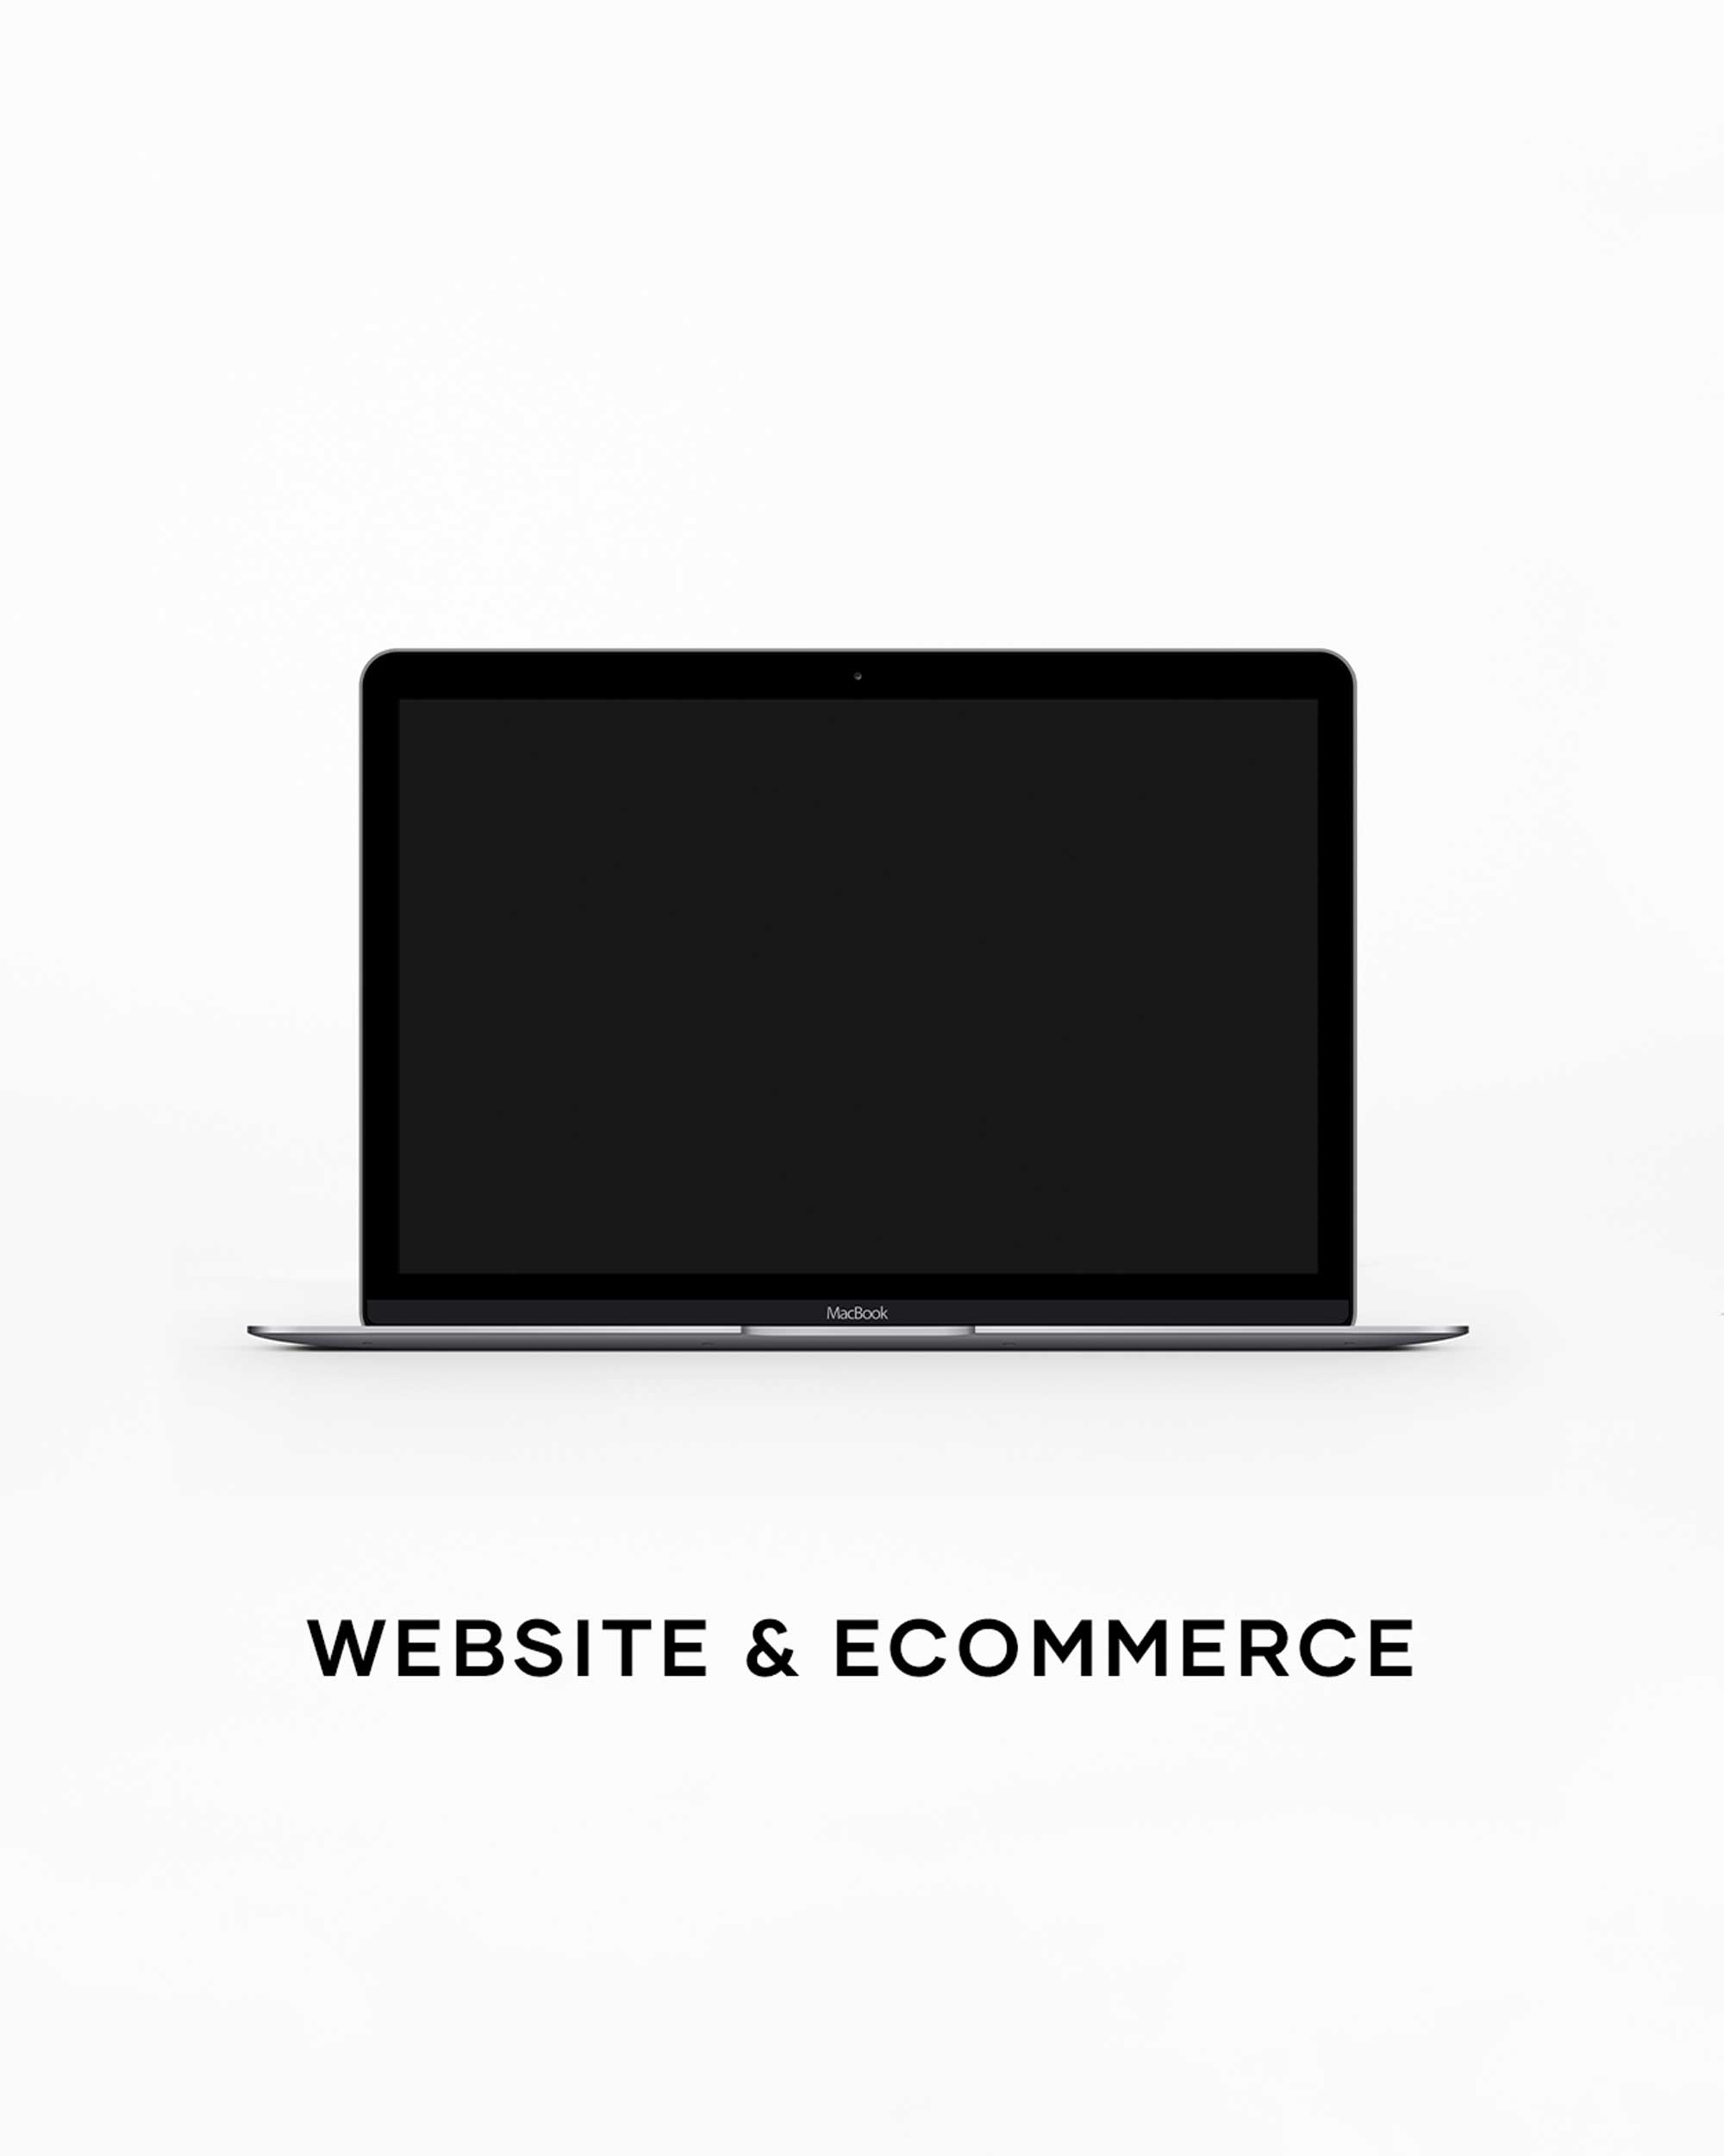 services-april-ford-Website-and-Ecommerce.jpg